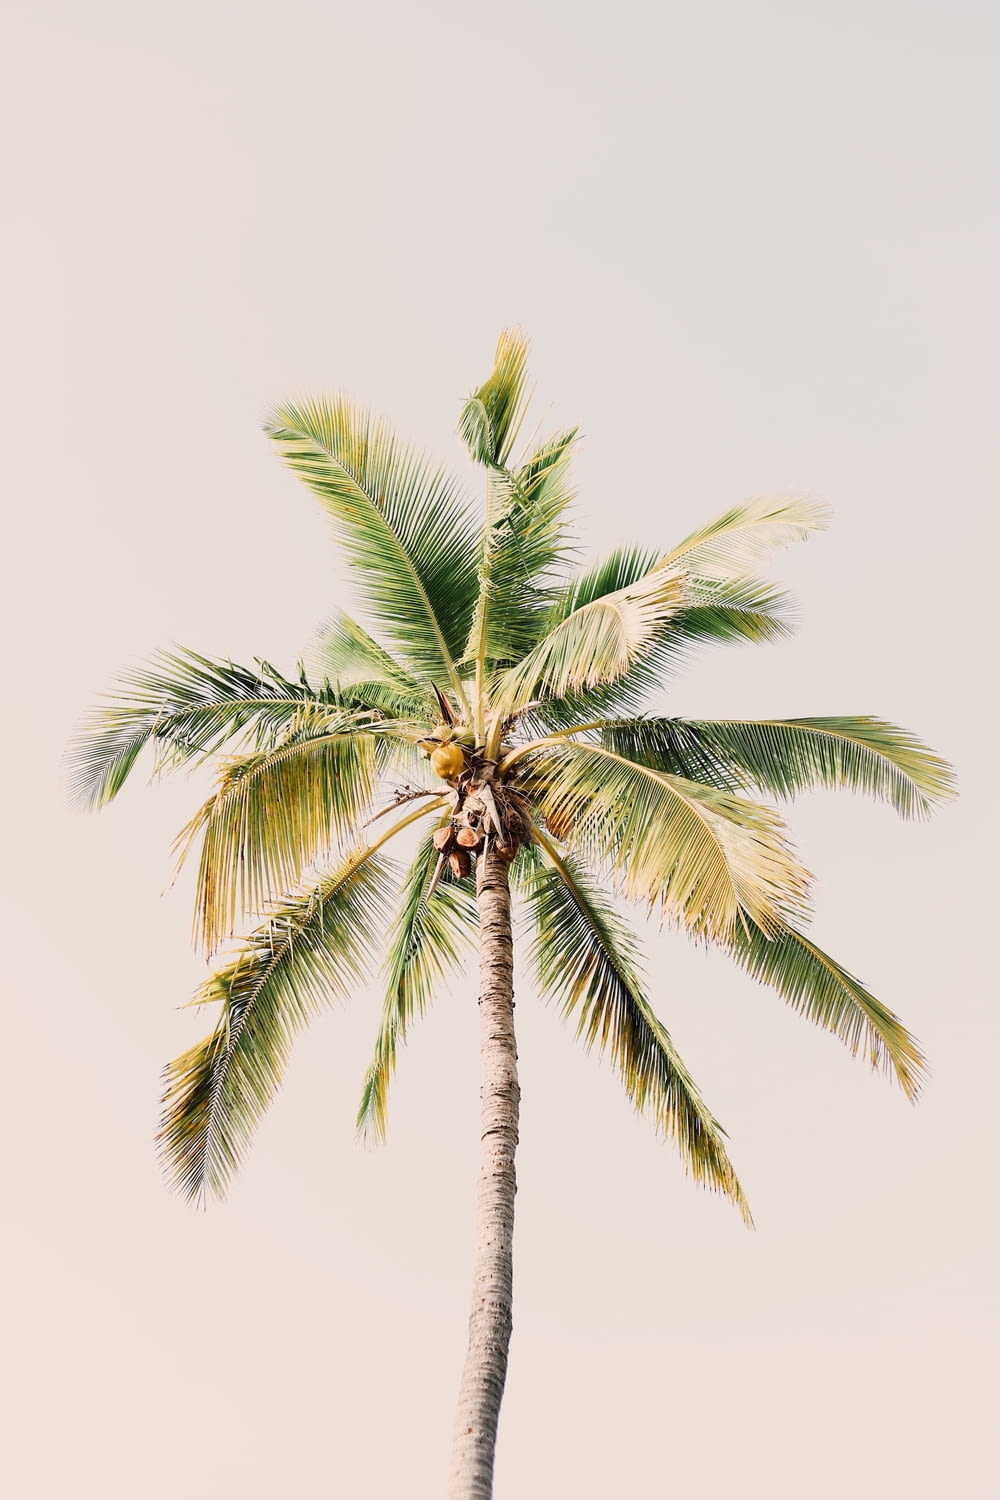 green coconut tree at daytime